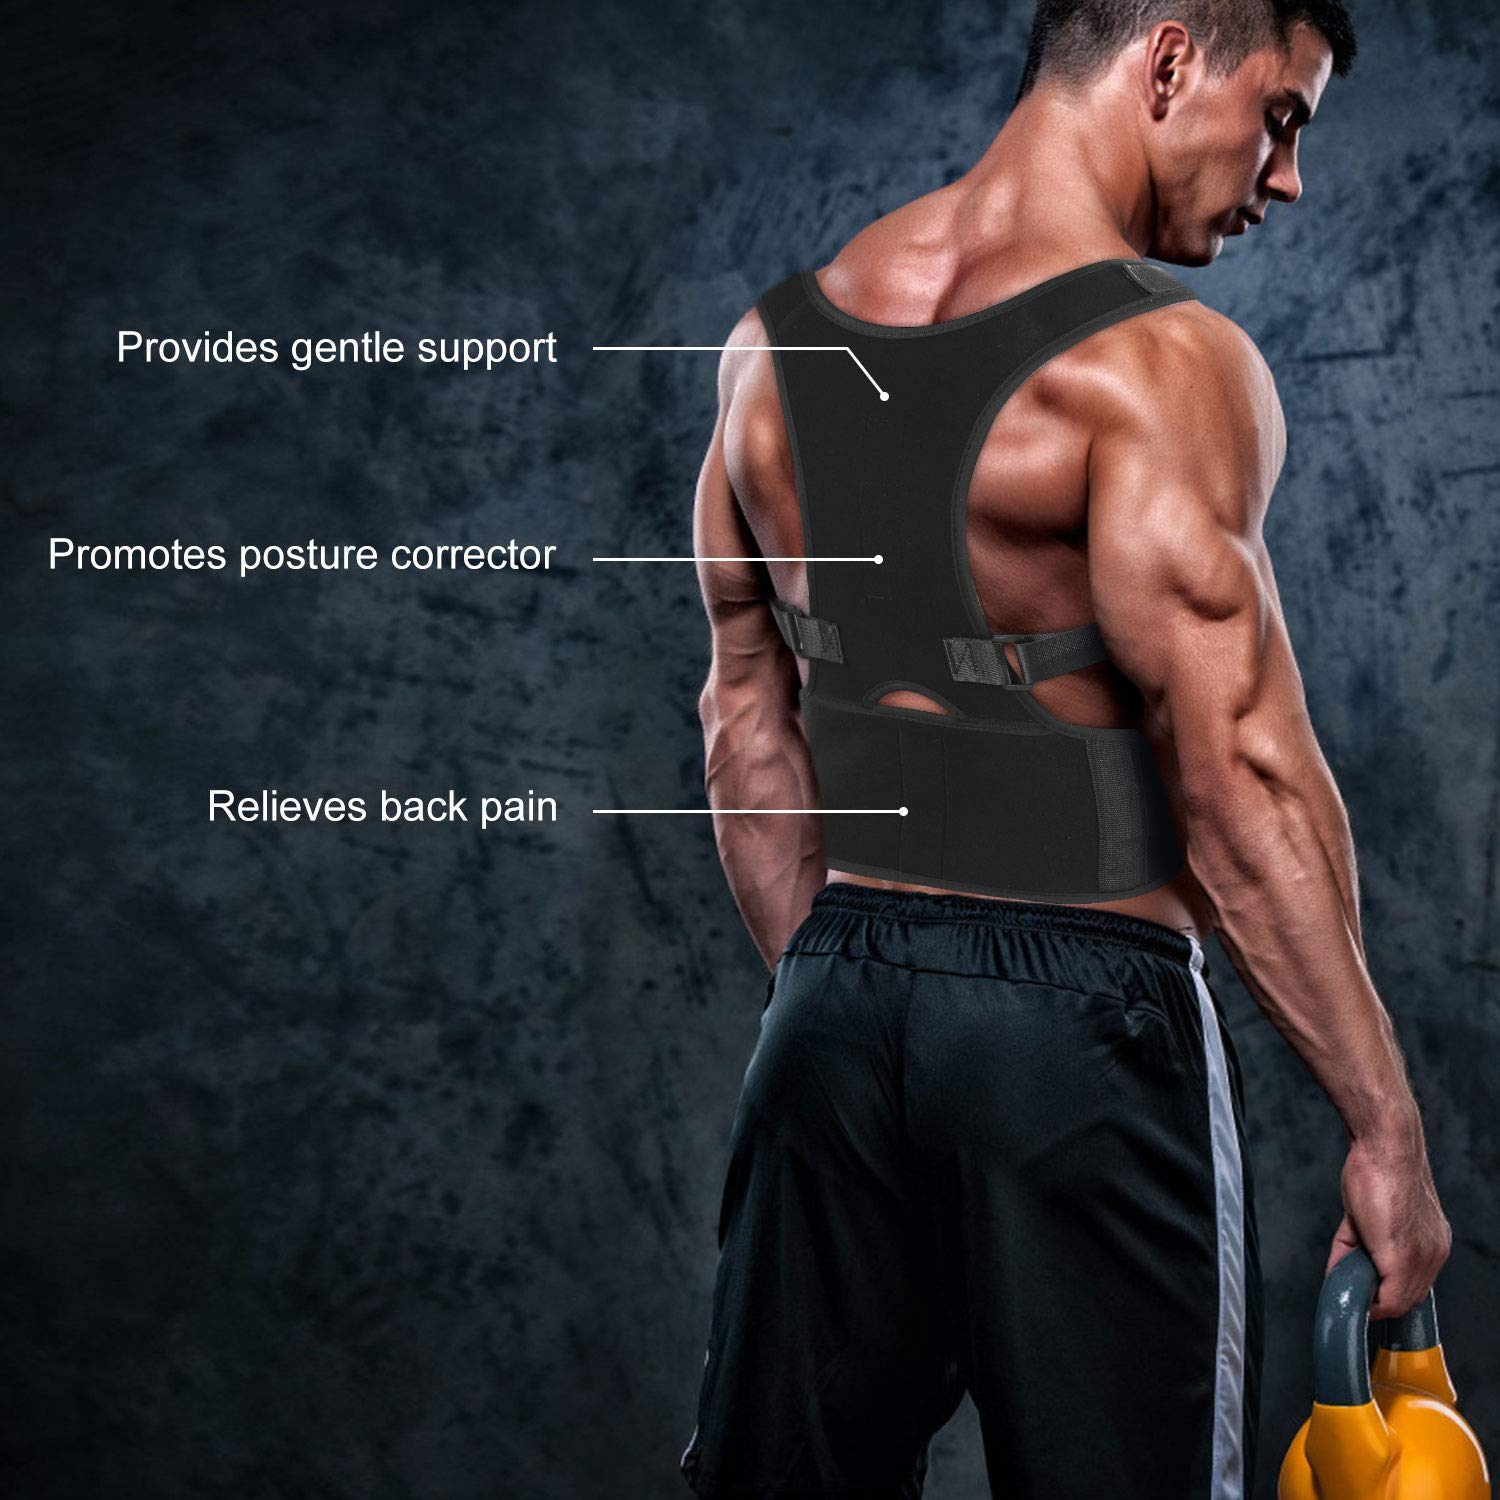 Improves Posture and Provides Lumbar Support,for Men and Women Supports Correct Posture Upper and Lower Back Lumbar Shoulder Support Trainer for Pain Relief Back Brace Posture Corrector